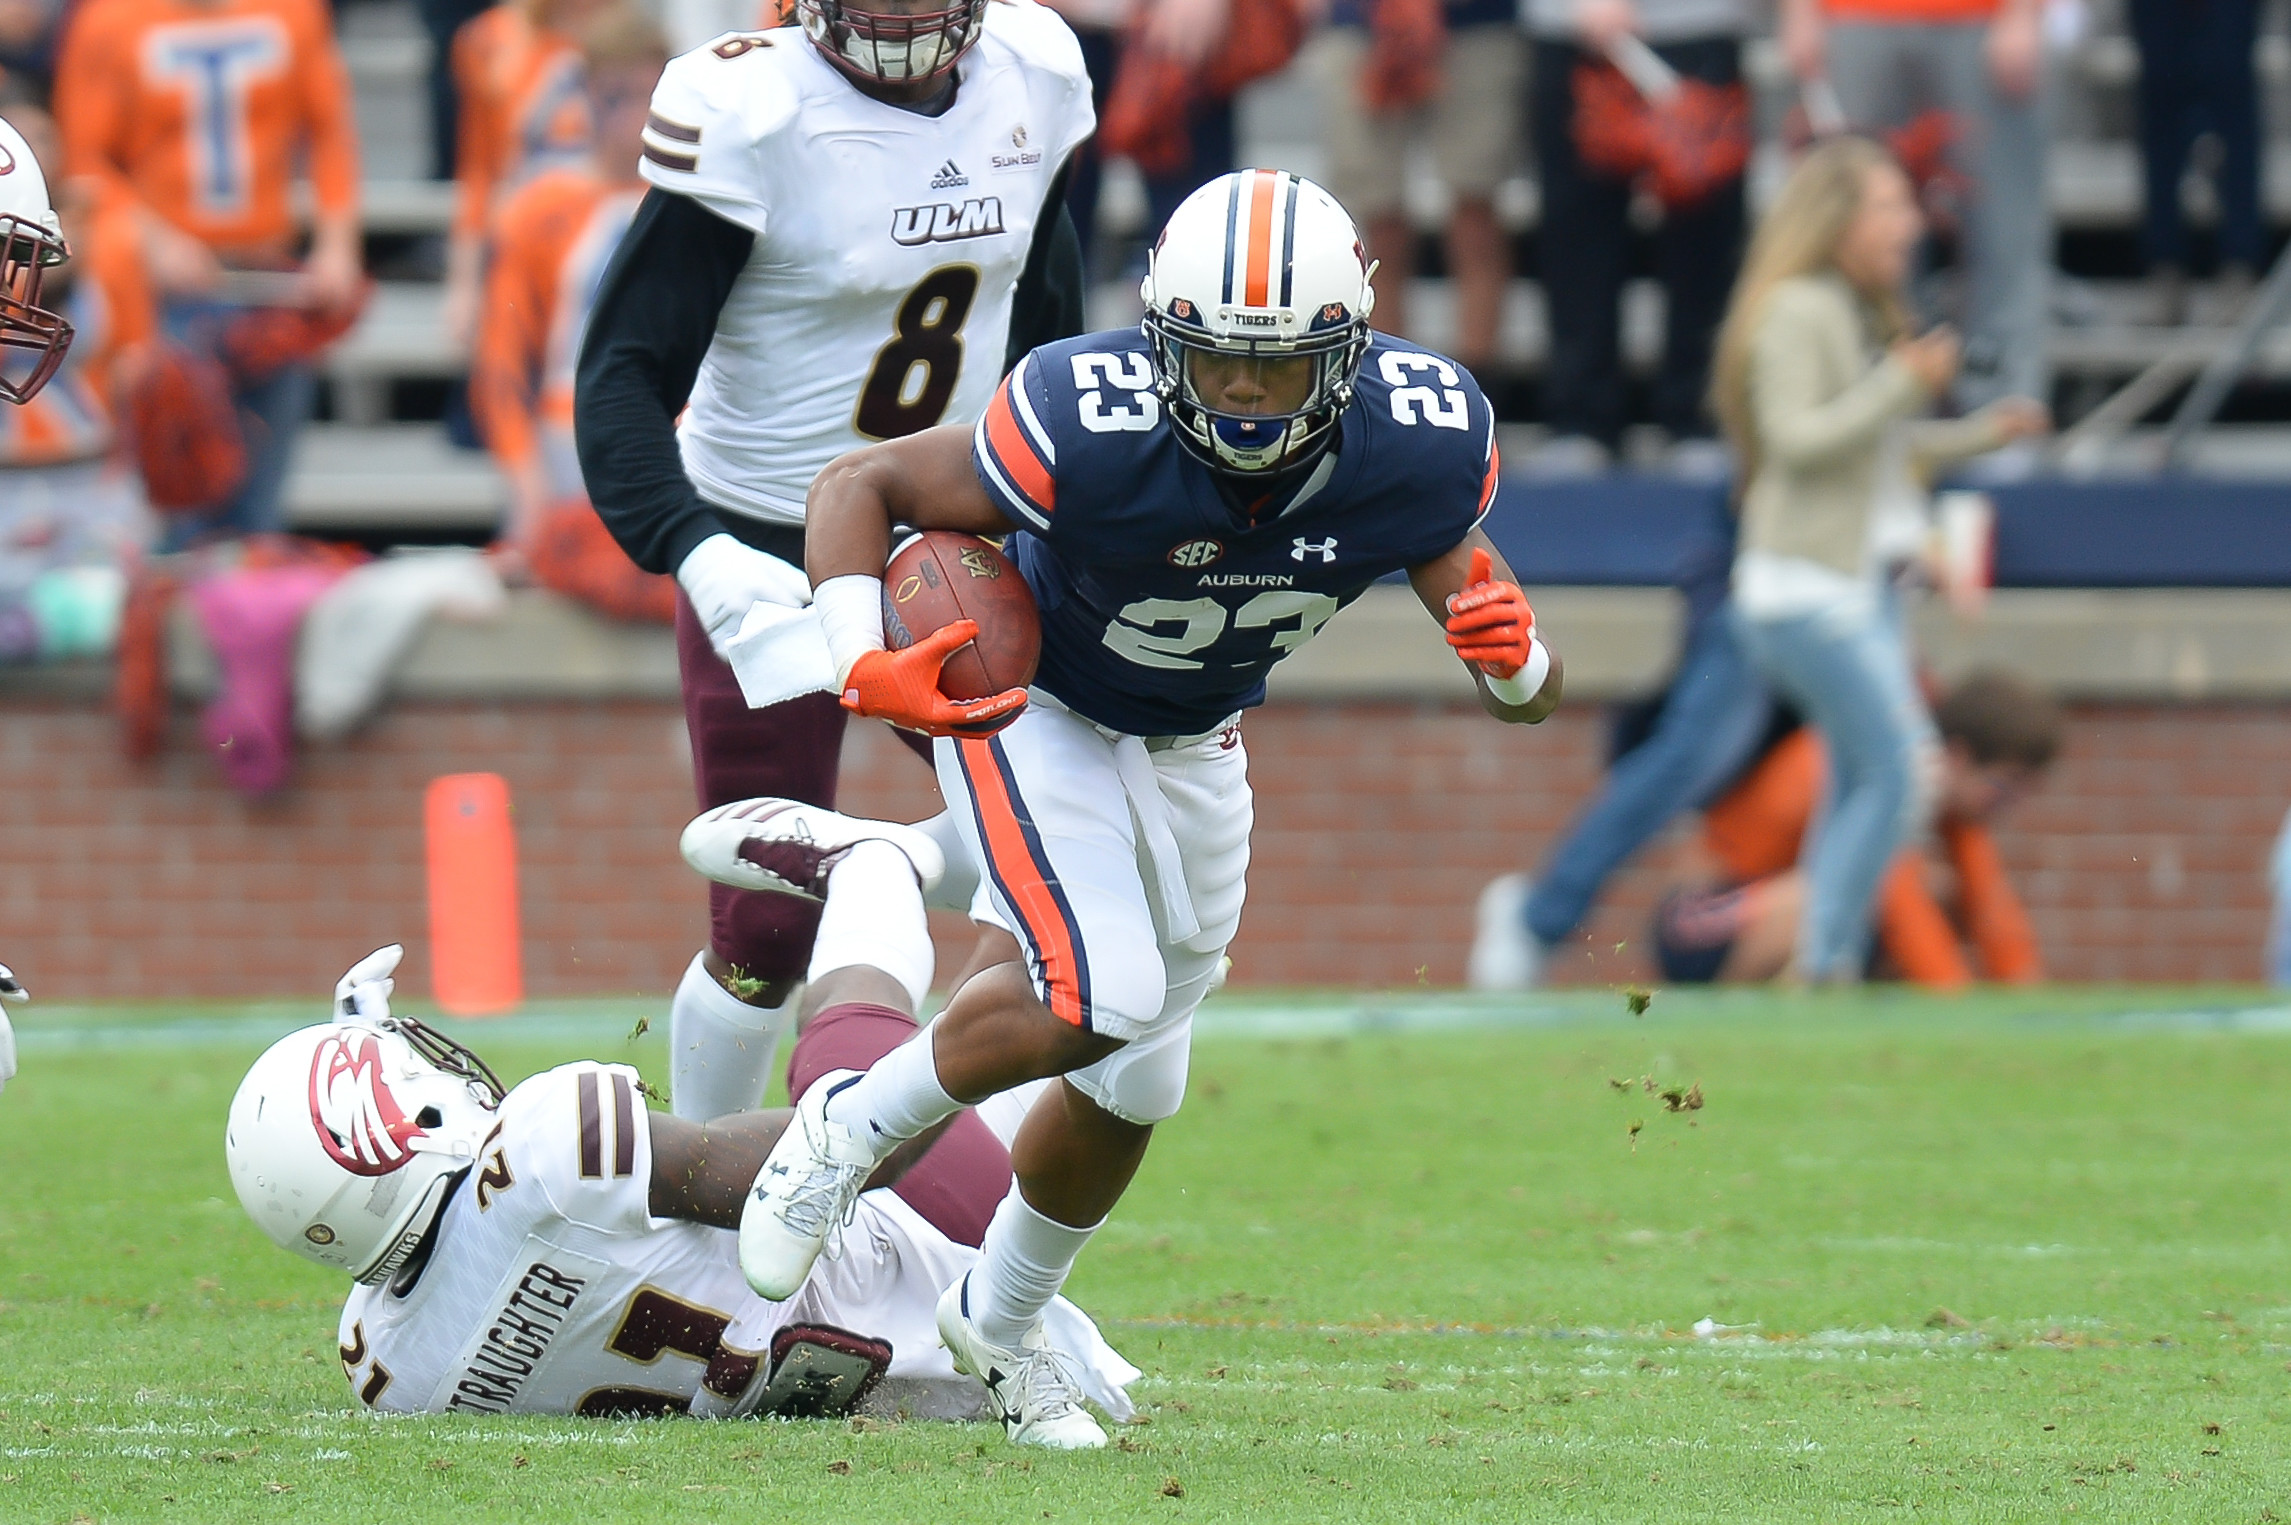 Louisiana Monroe Warhawks cornerback Corey Straughter (21) can make the tackle on Auburn Tigers wide receiver Ryan Davis (23) during the first half of Saturday's game, at Jordan-Hare Stadium.